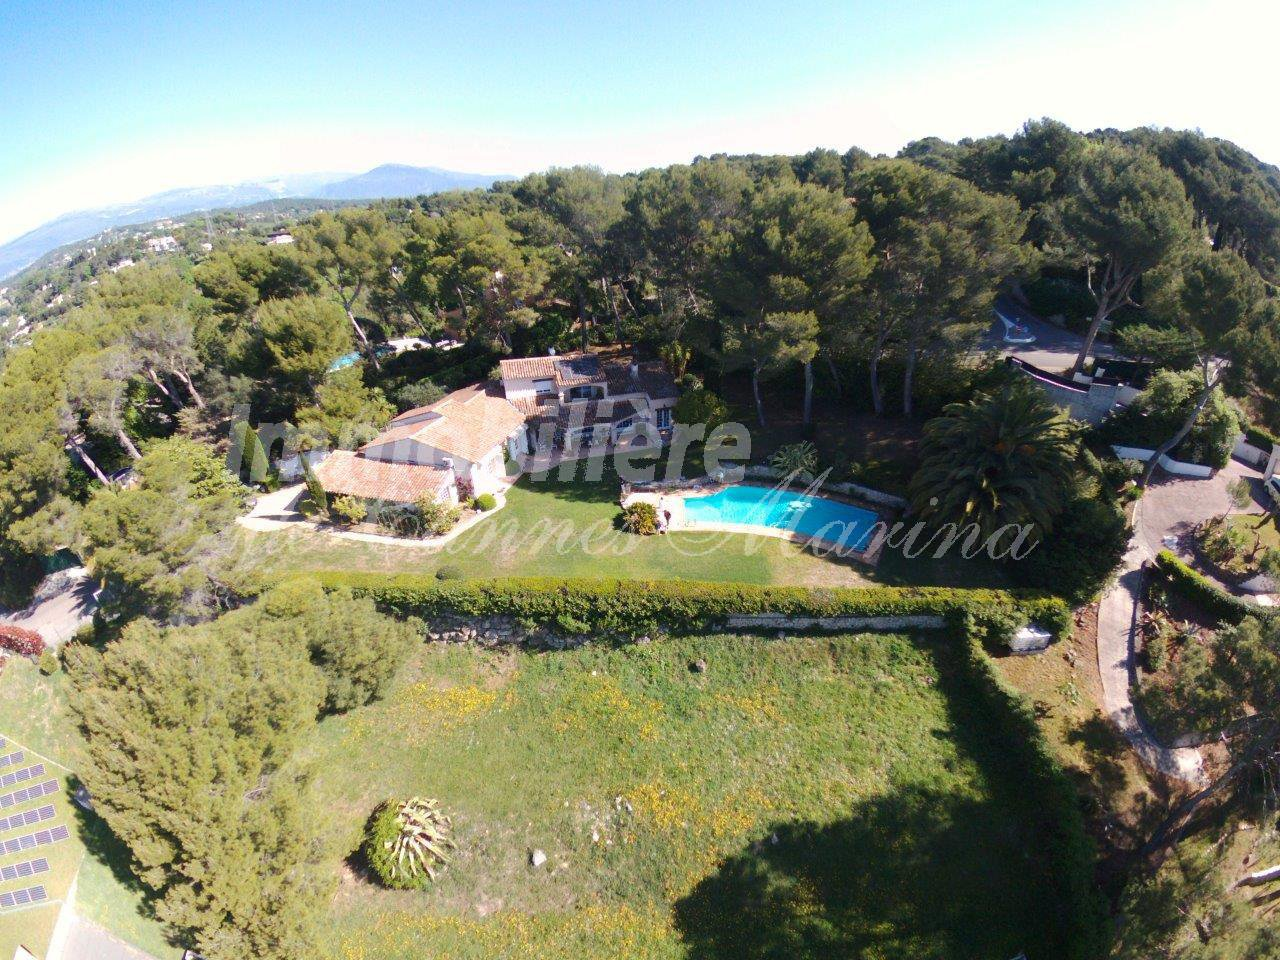 PROPERTY FOR SALE - PANORAMIC SEA VIEWS - MOUGINS Côte d'Azur.